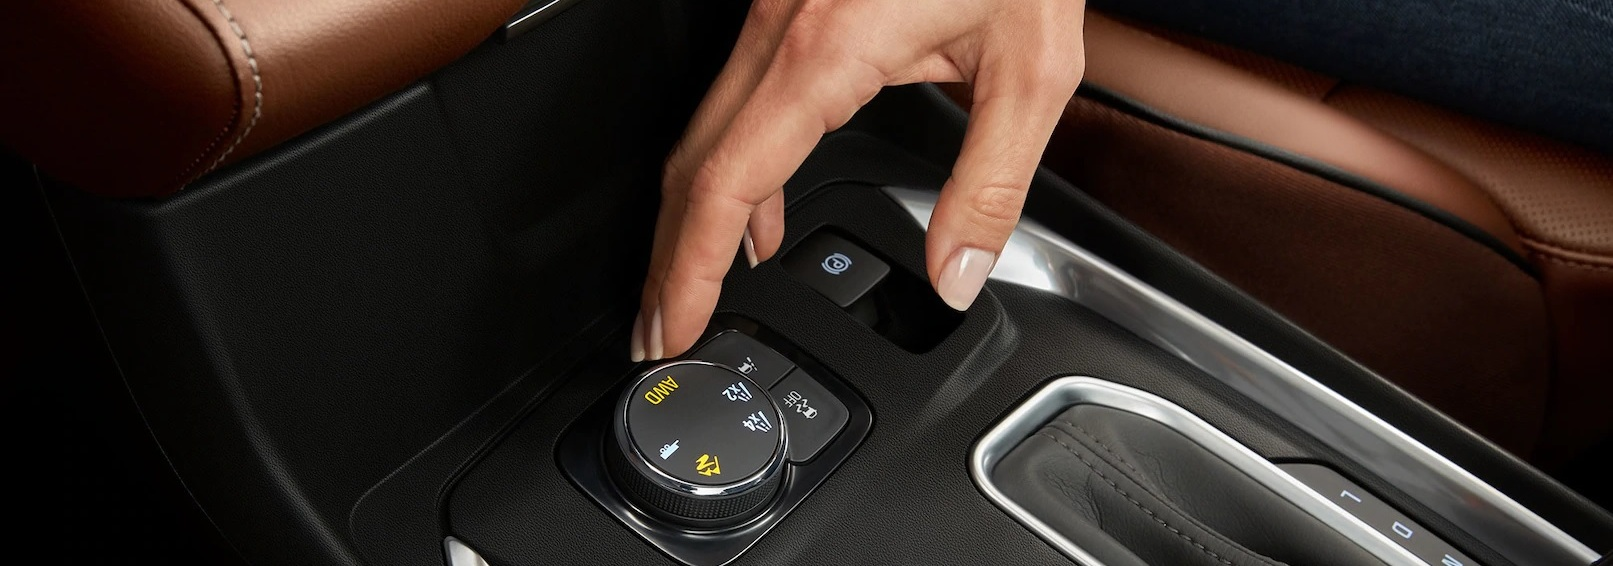 Traction Mode Select in the 2020 Traverse